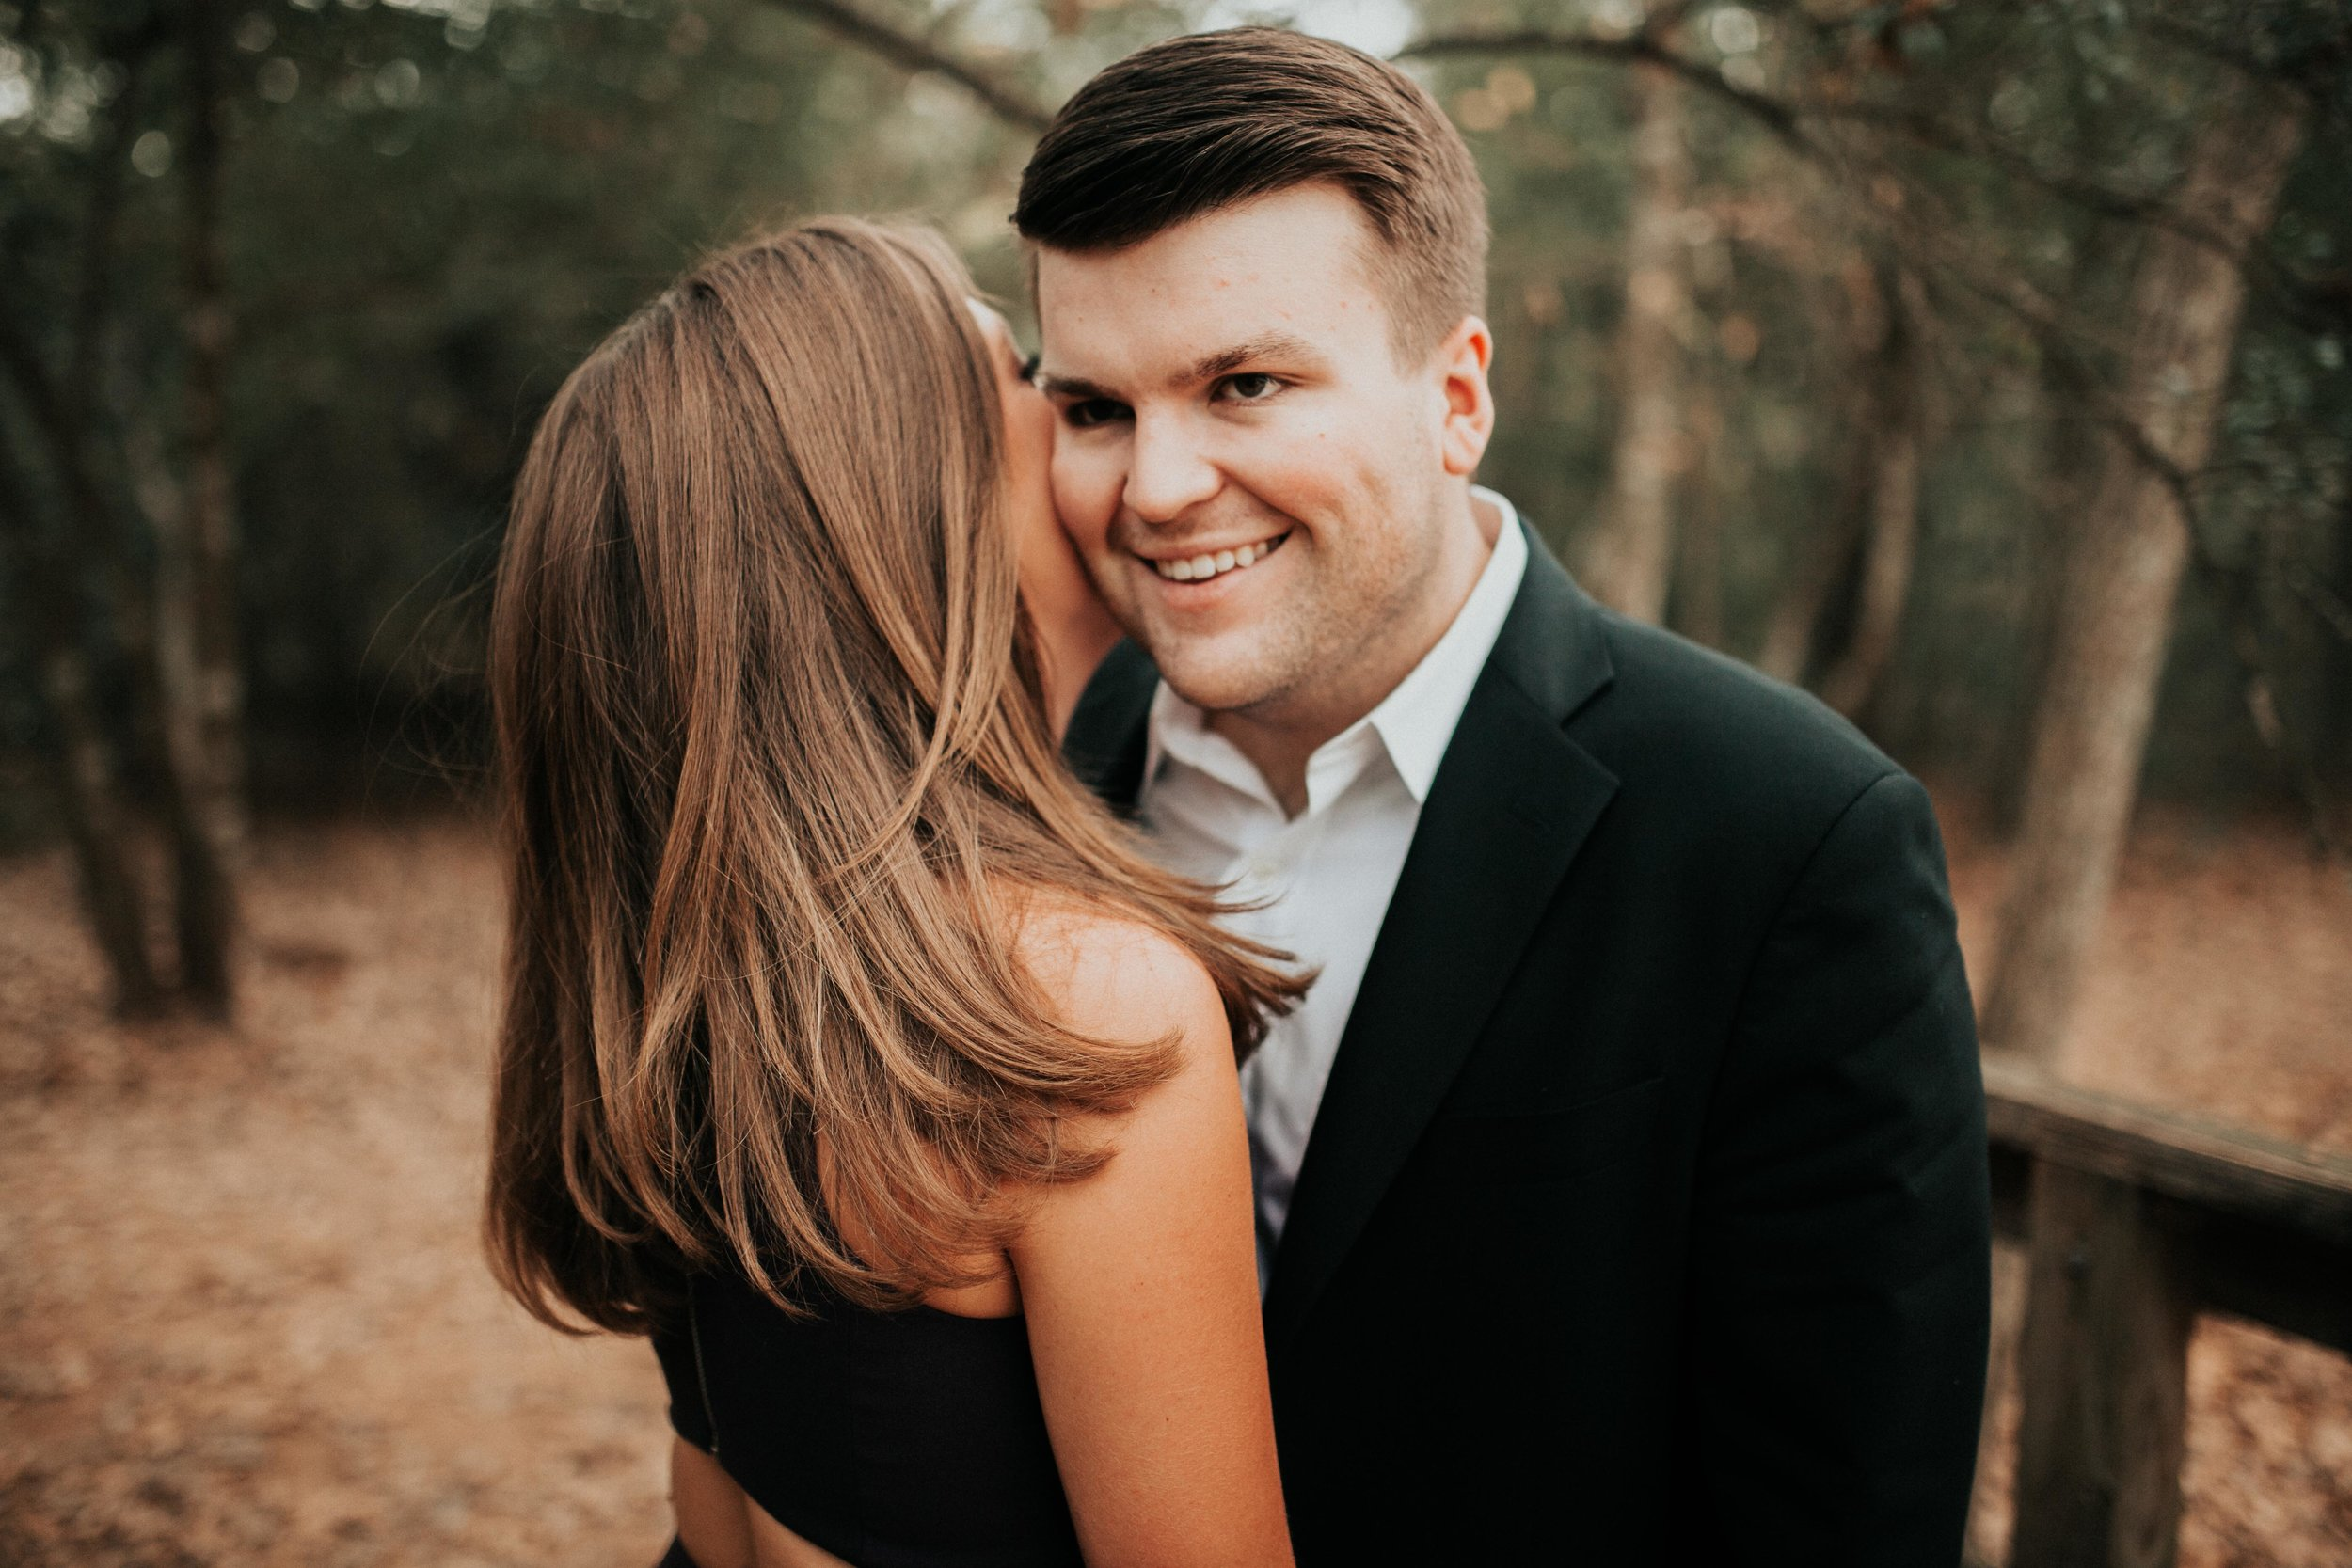 Memorial Park Engagement Session Houston Texas - Madeleine Frost-1202.jpg